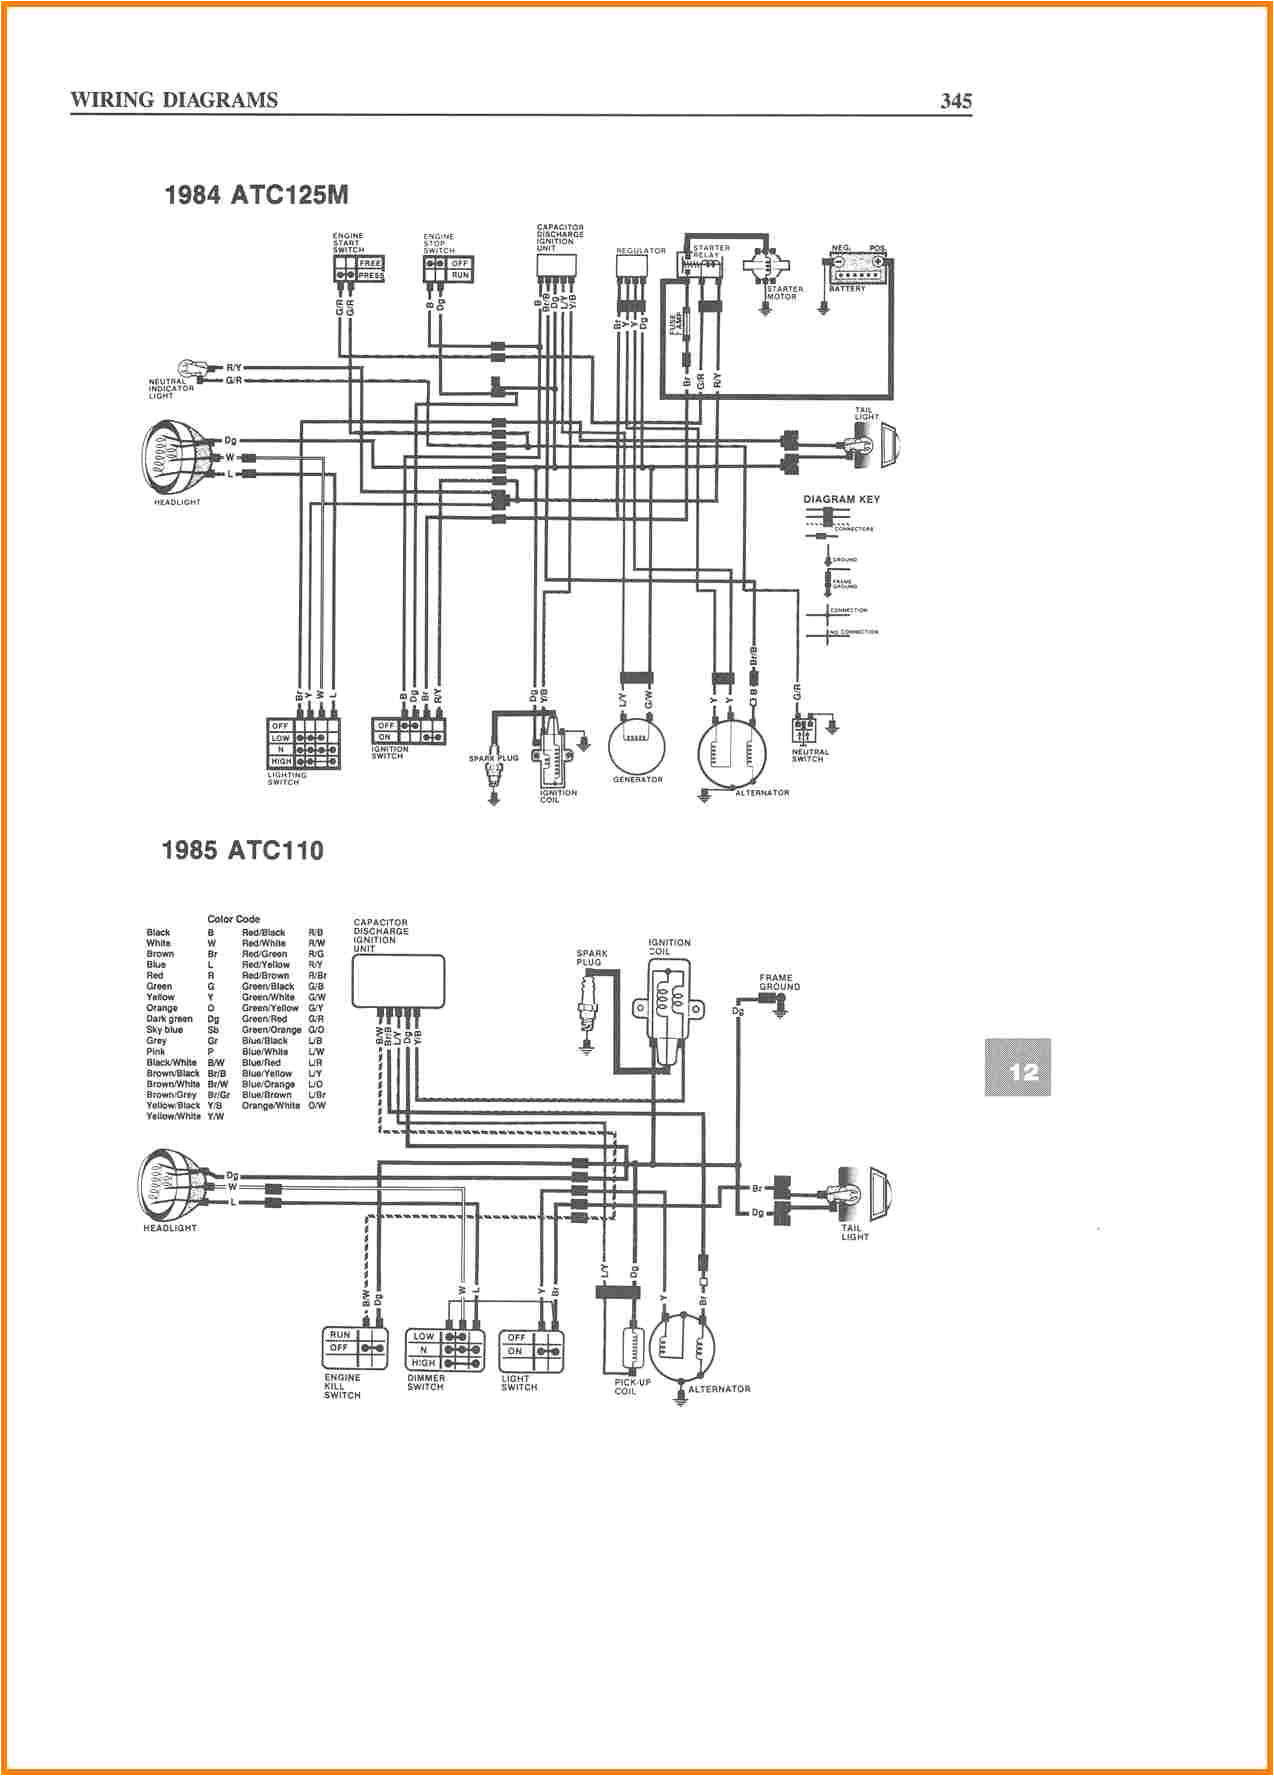 taotao 50cc scooter wiring diagram beautiful magnificent tao 125 new taotao 50 wiring diagram tao tao 50cc wiring diagrams